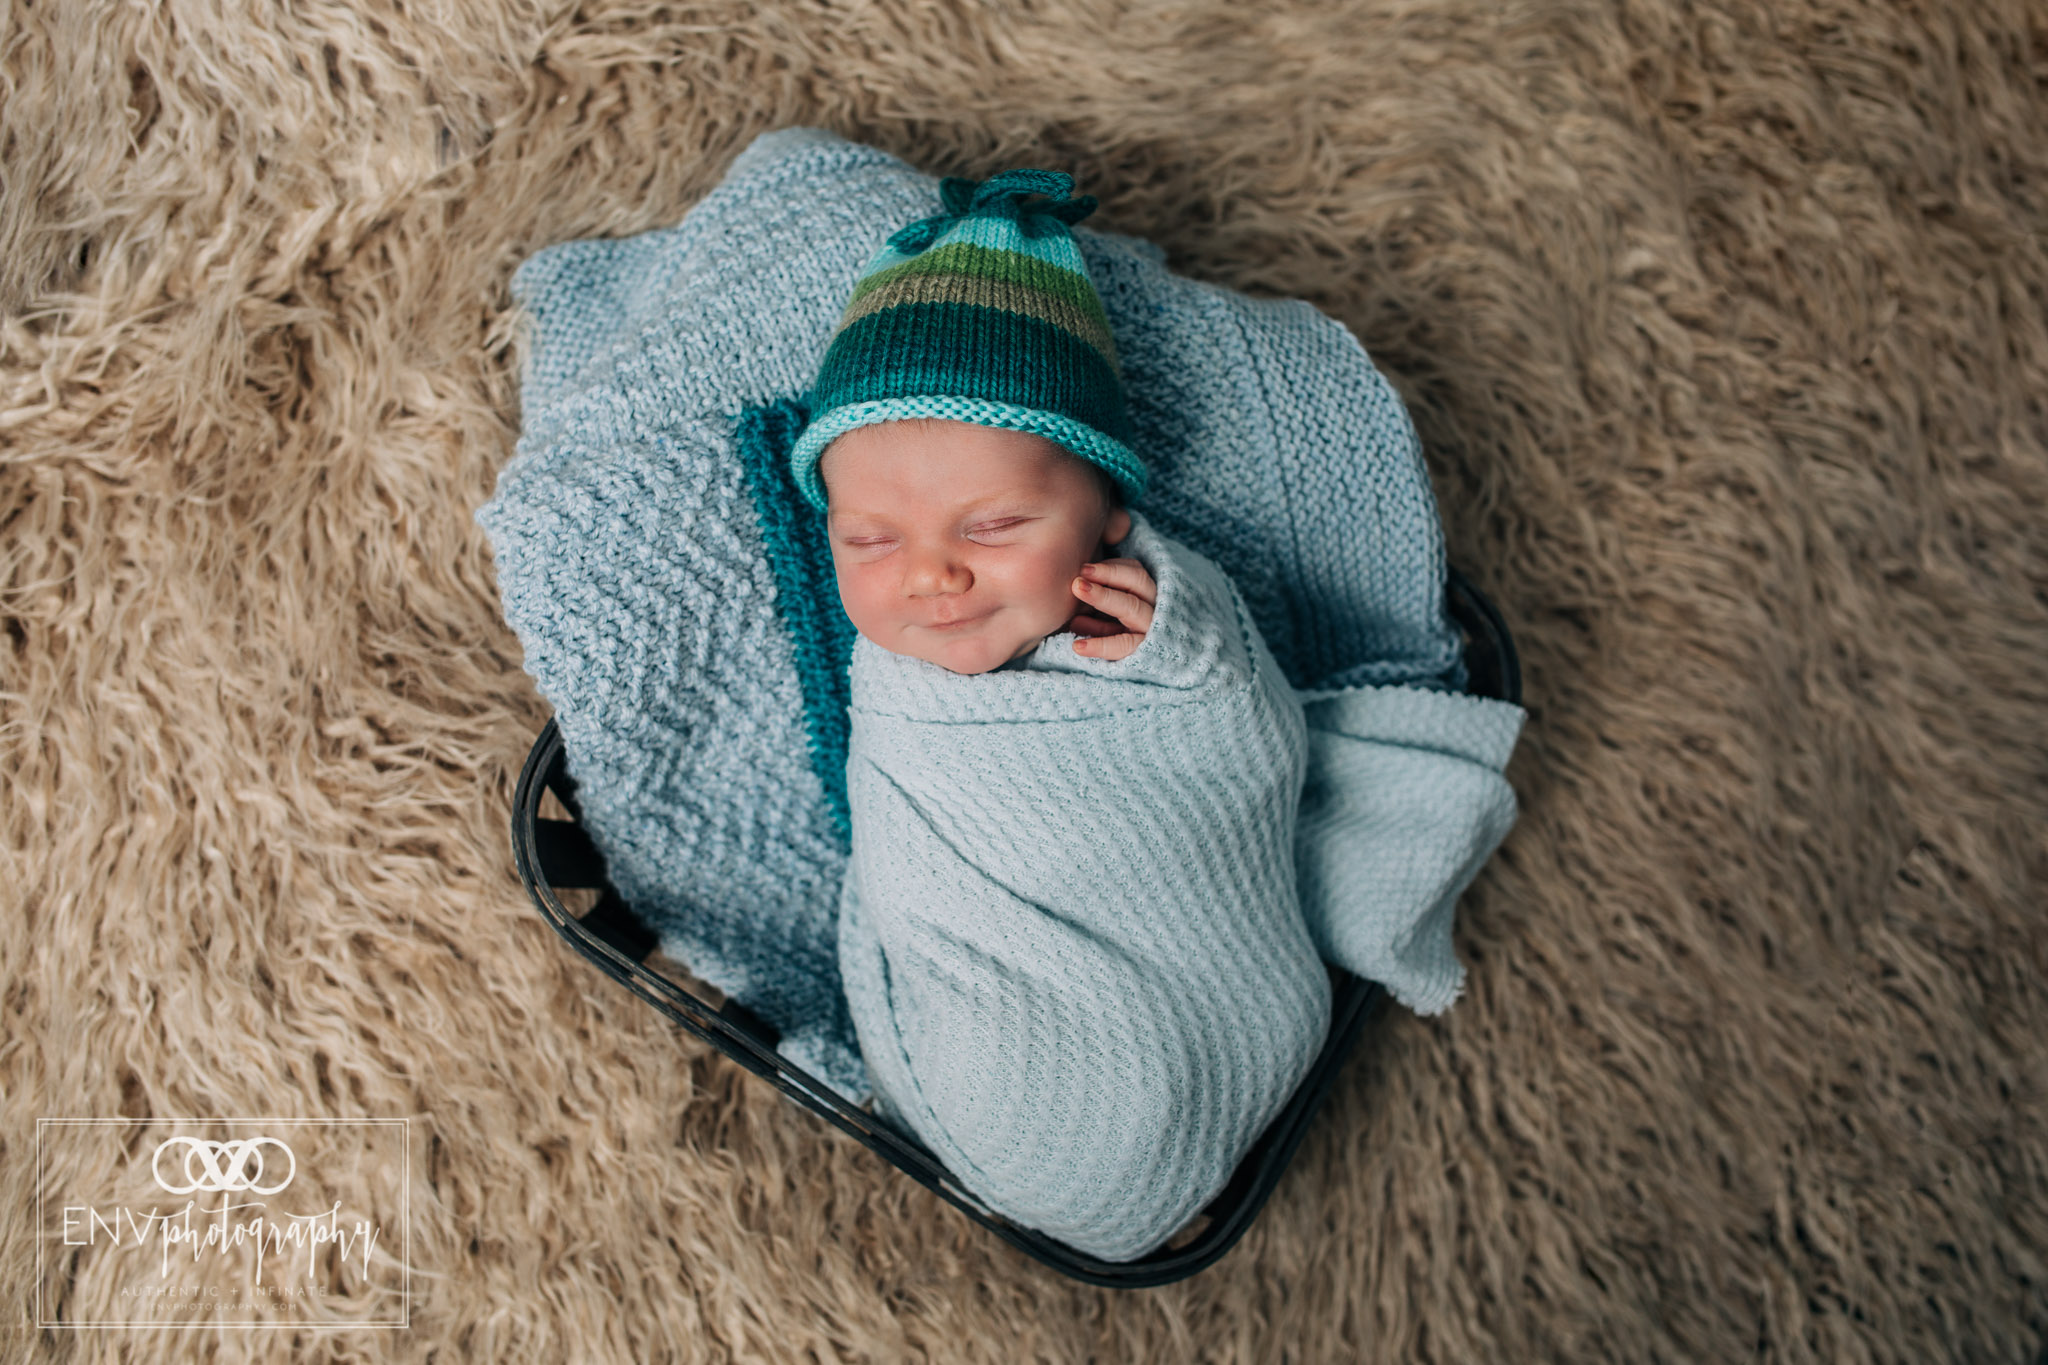 Mount Vernon Columbus Ohio newborn Photographer (2).jpg